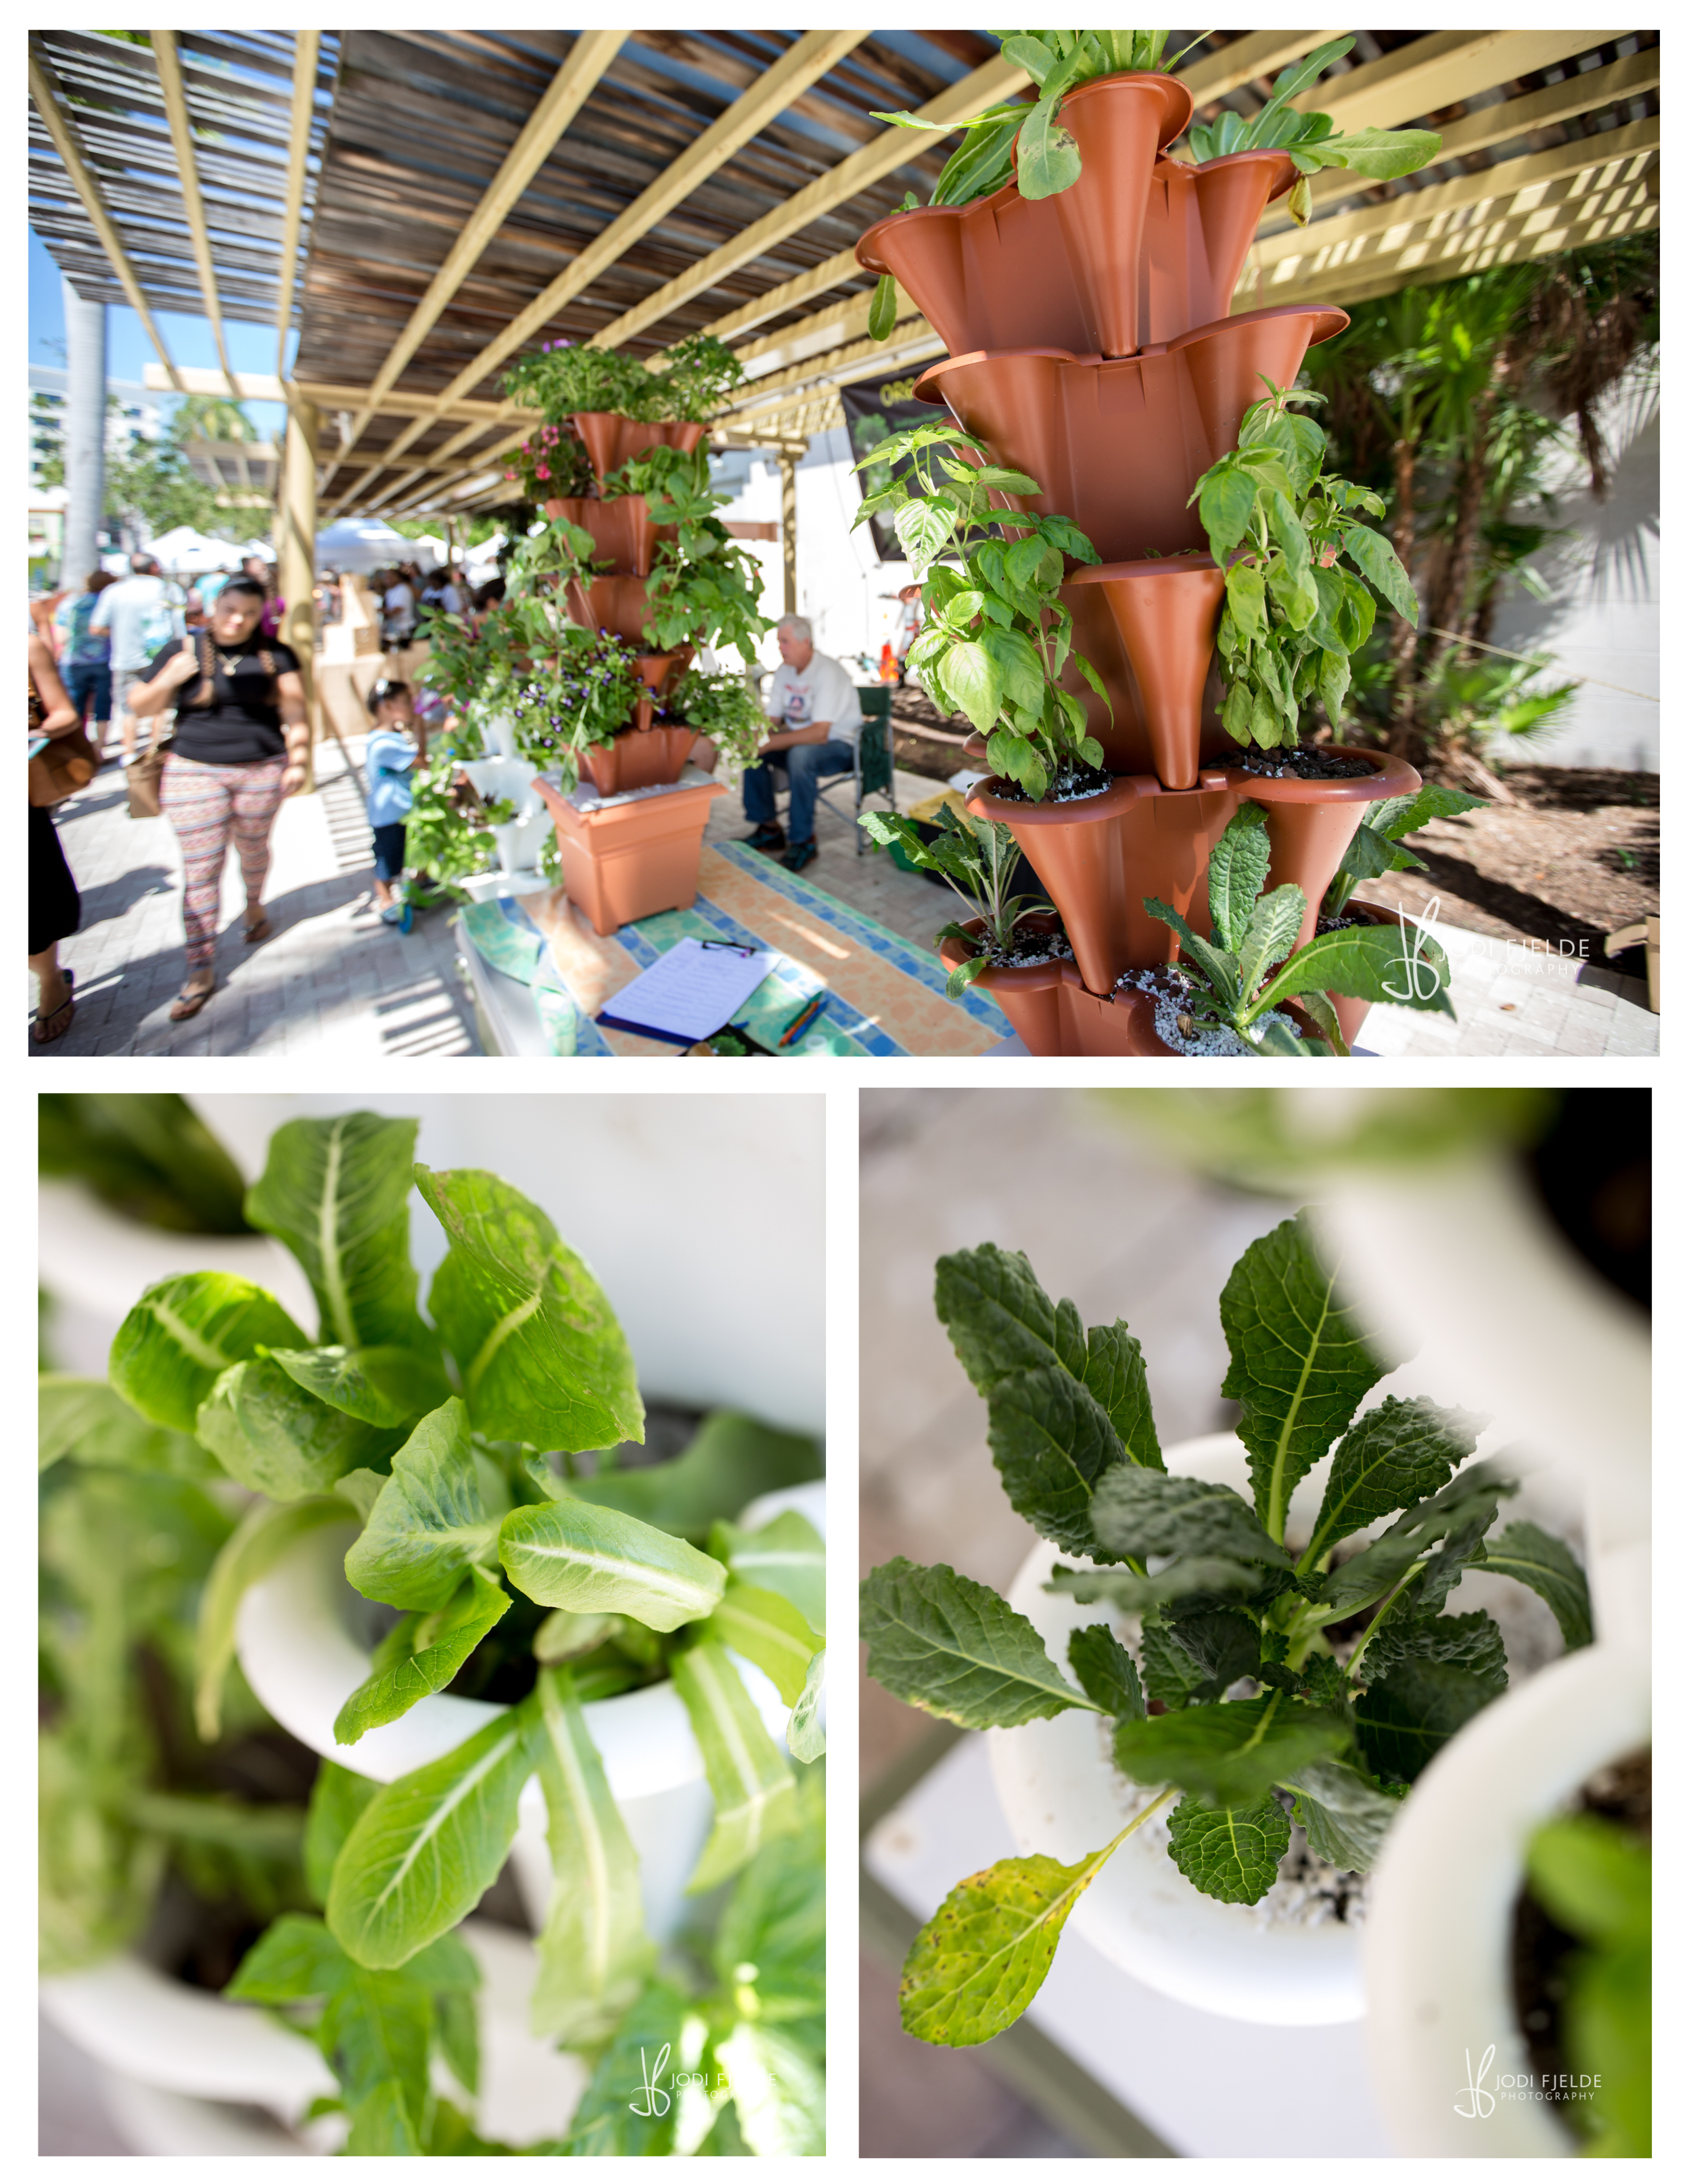 West_Palm_Beach_Green_Market_Organic_jodi_fjelde_Photography_10.jpg